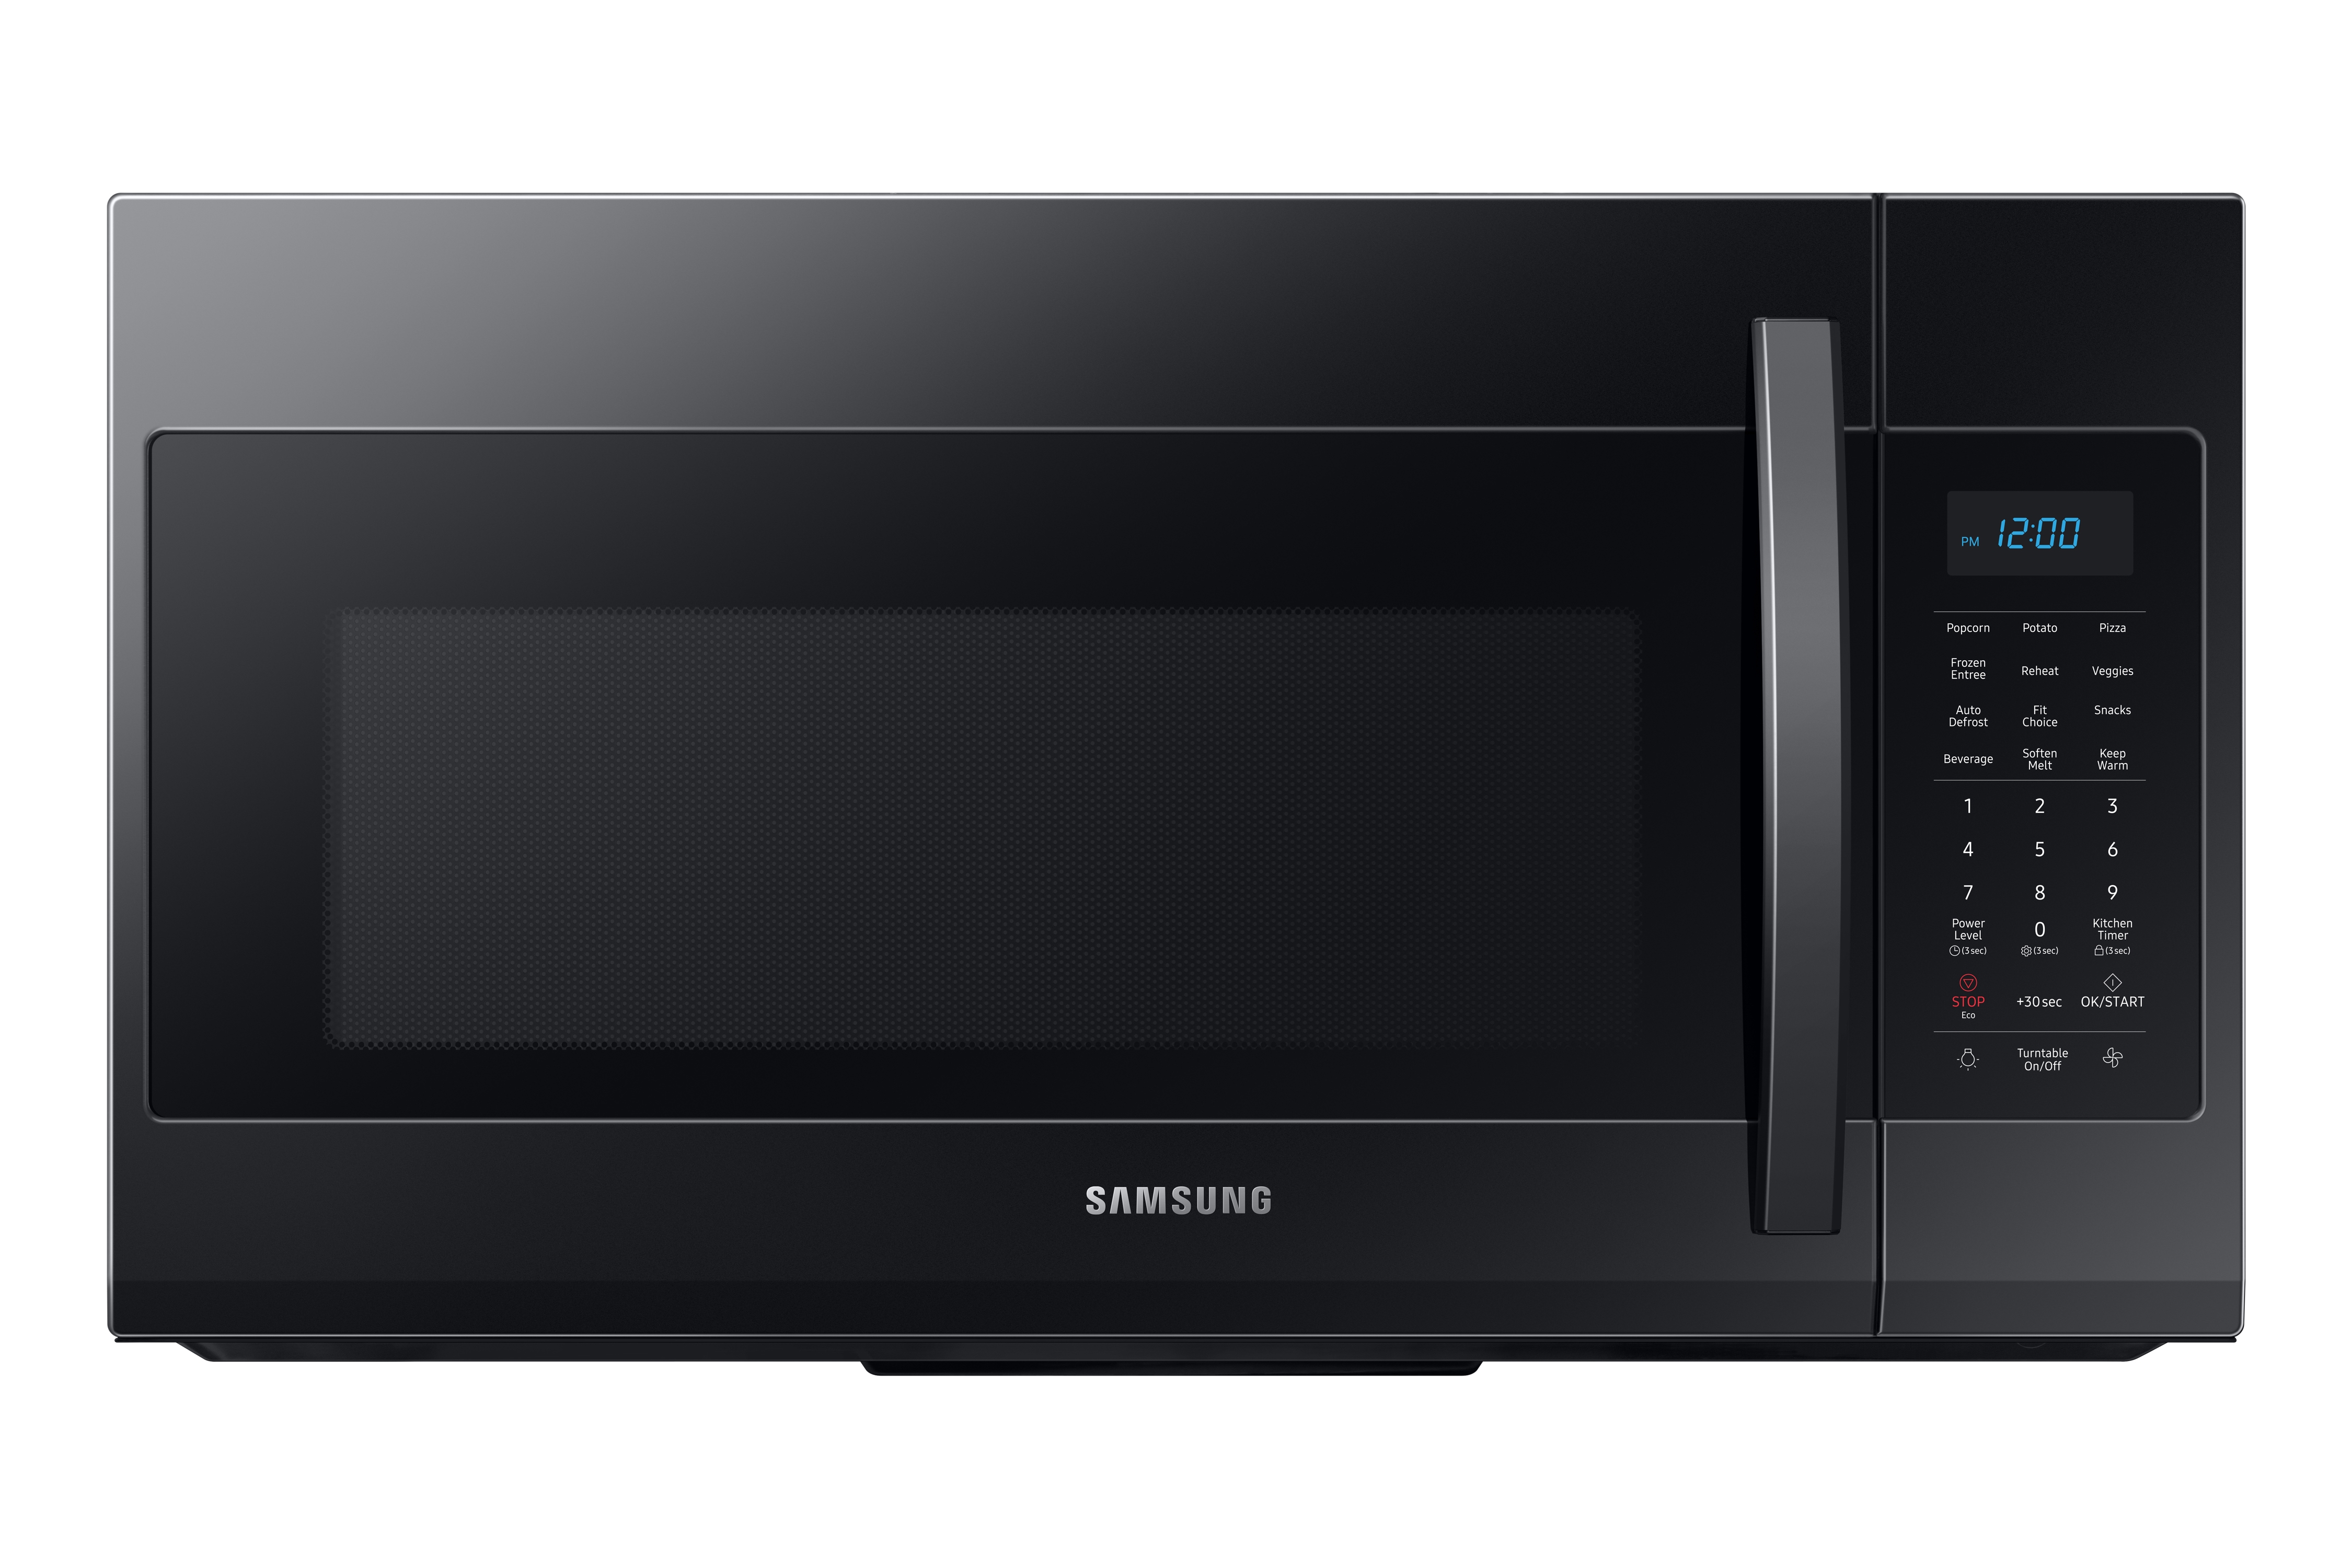 Samsung 1.9 cu ft Over The Range Microwave with Sensor Cooking in Black